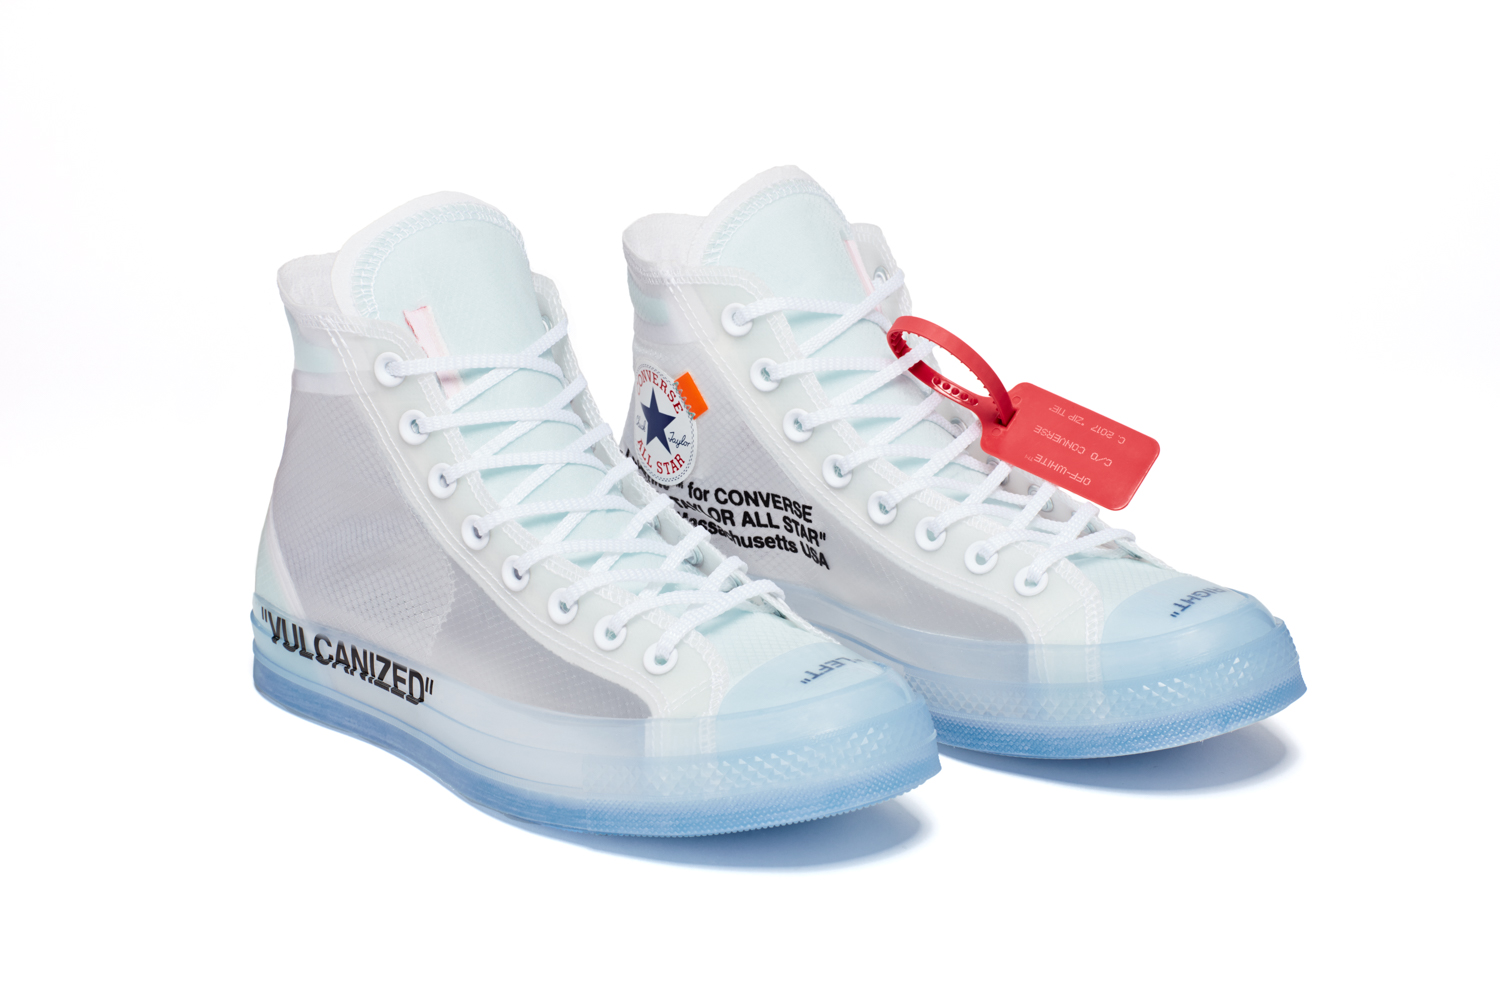 SU18_ONESTAR_VIRGIL_OFF_WHITE_COLLAB_PAIR.jpg